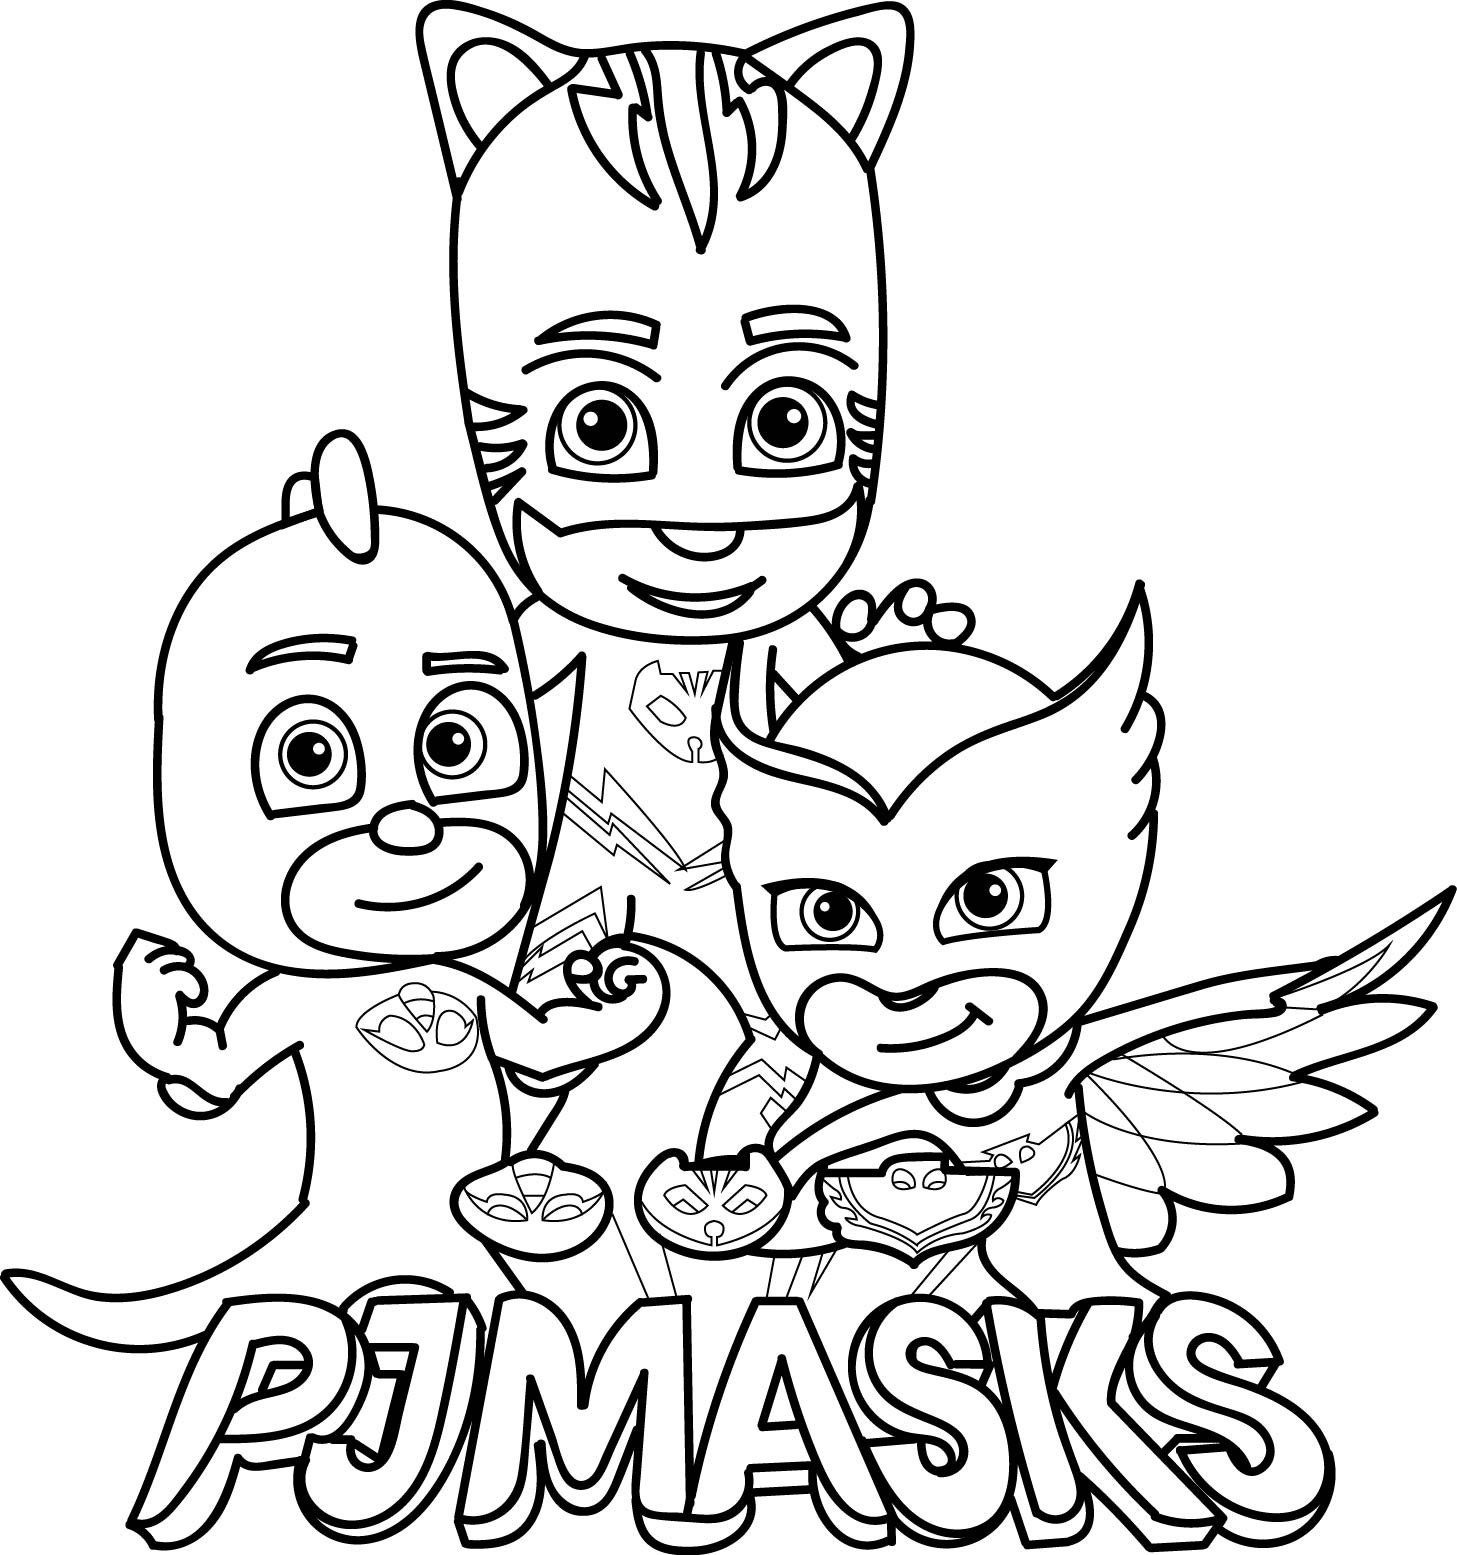 Free Pj Masks Coloring Pages At Getdrawings Com Free For Personal